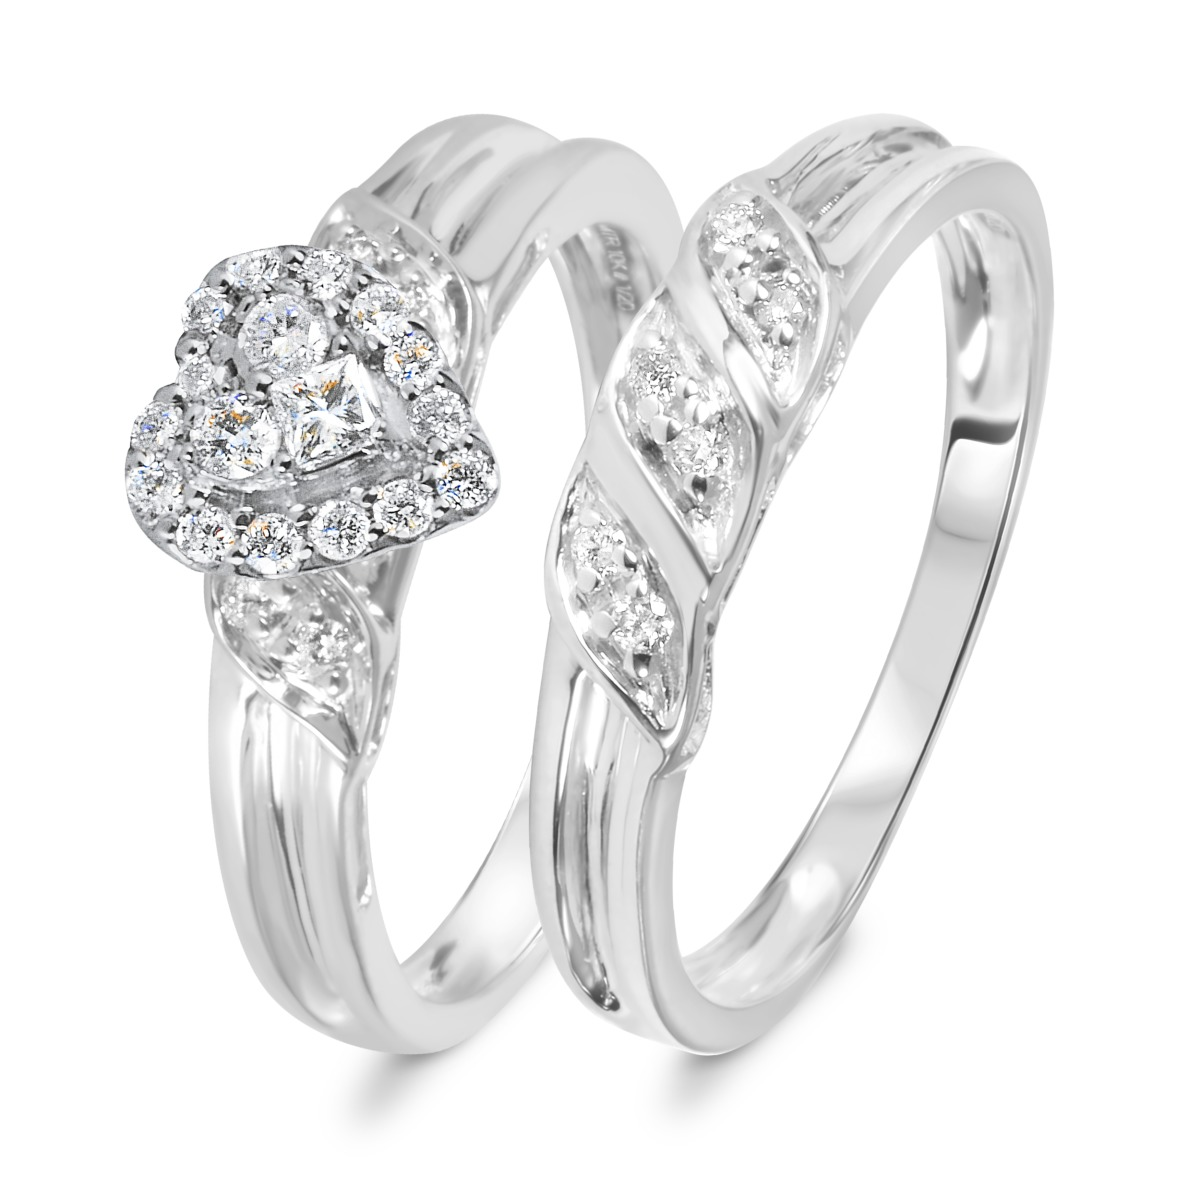 1/3 CT. T.W. Diamond Women's Bridal Wedding Ring Set 14K White Gold